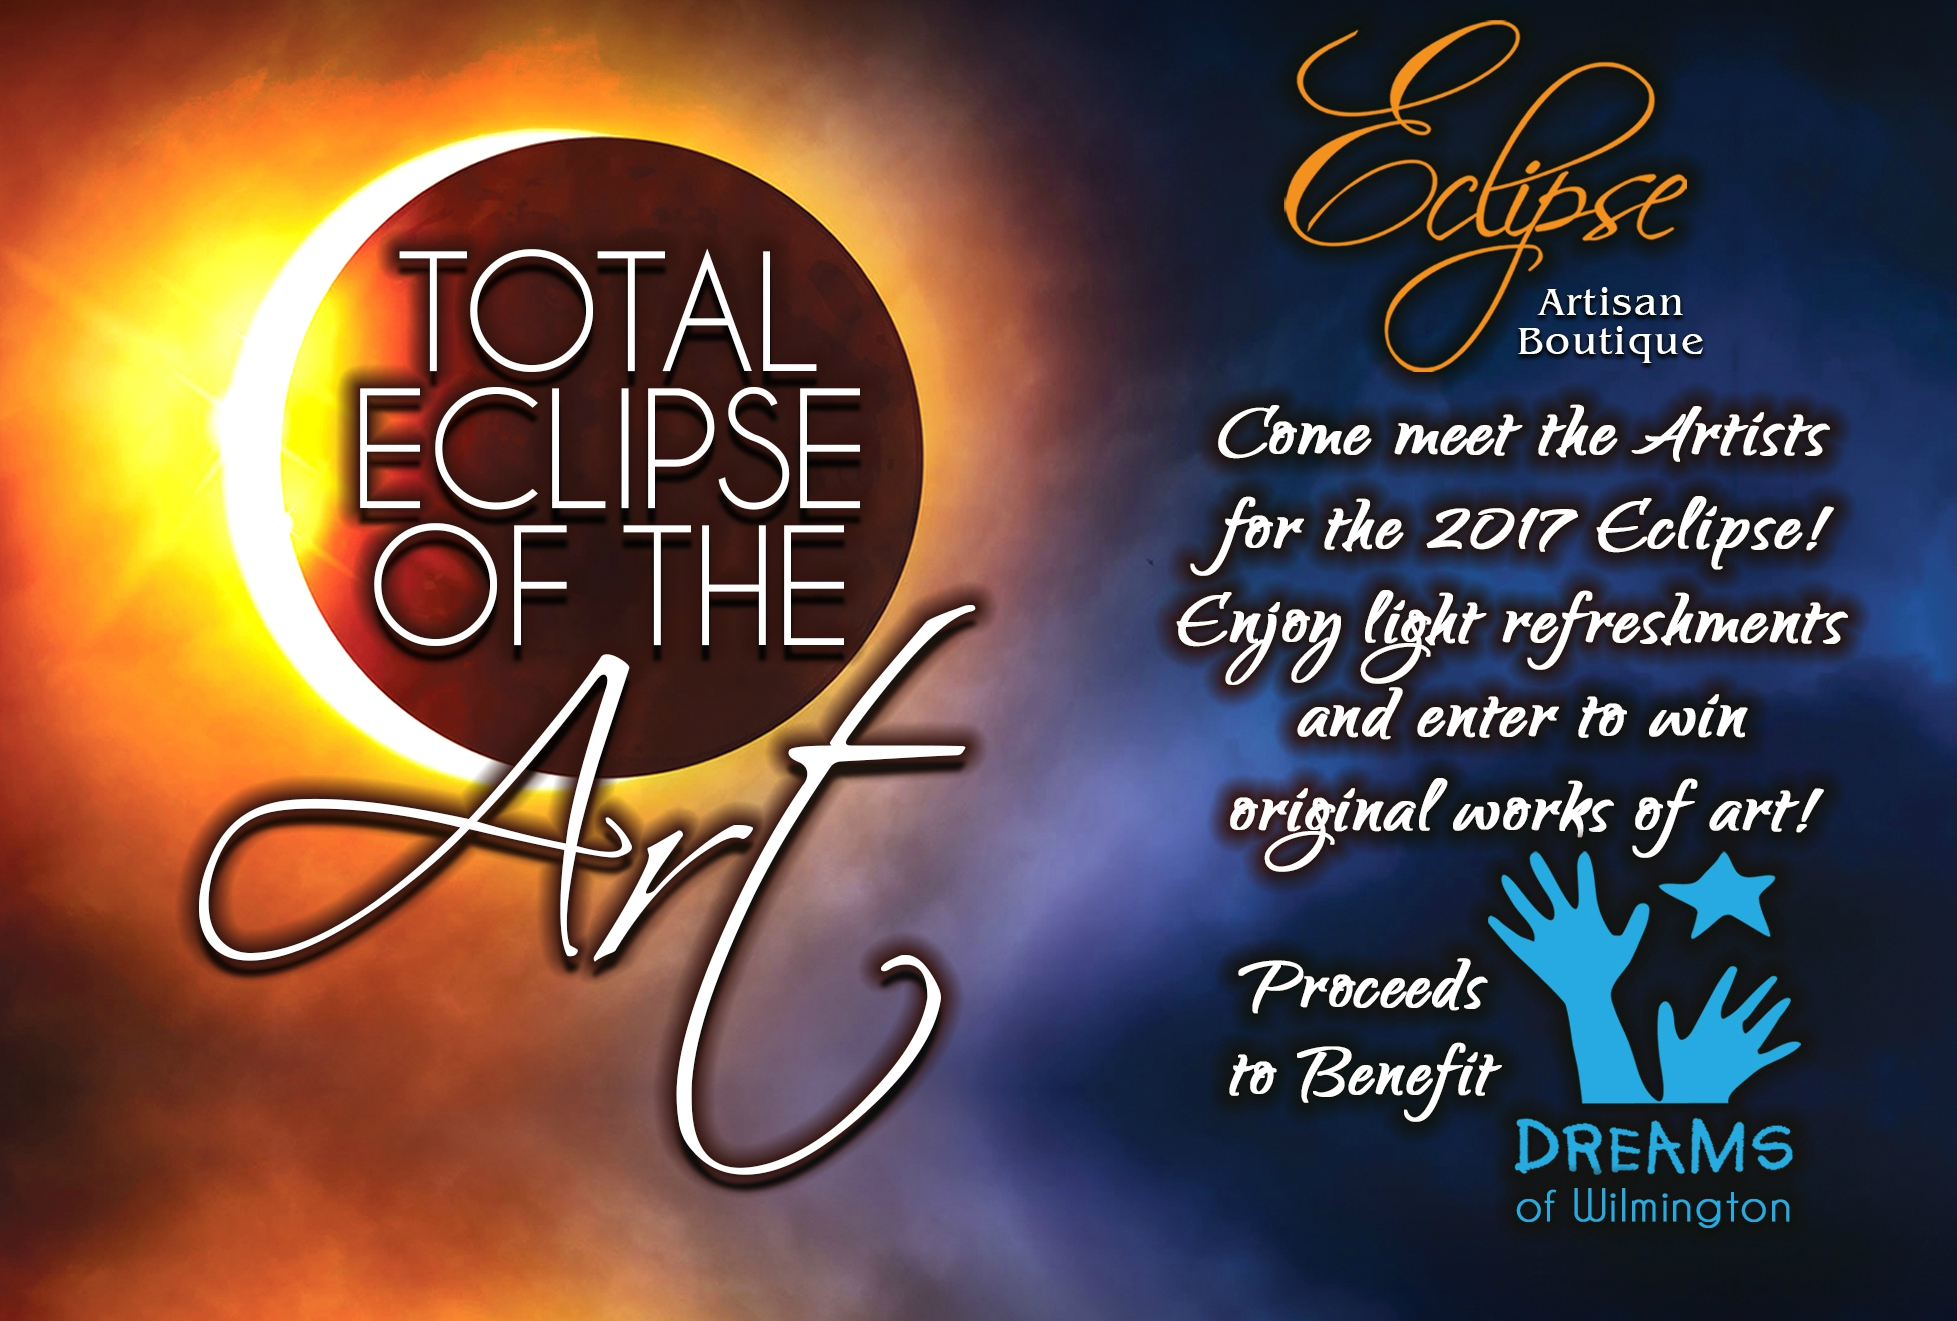 Total Eclipse of the Art Invitation